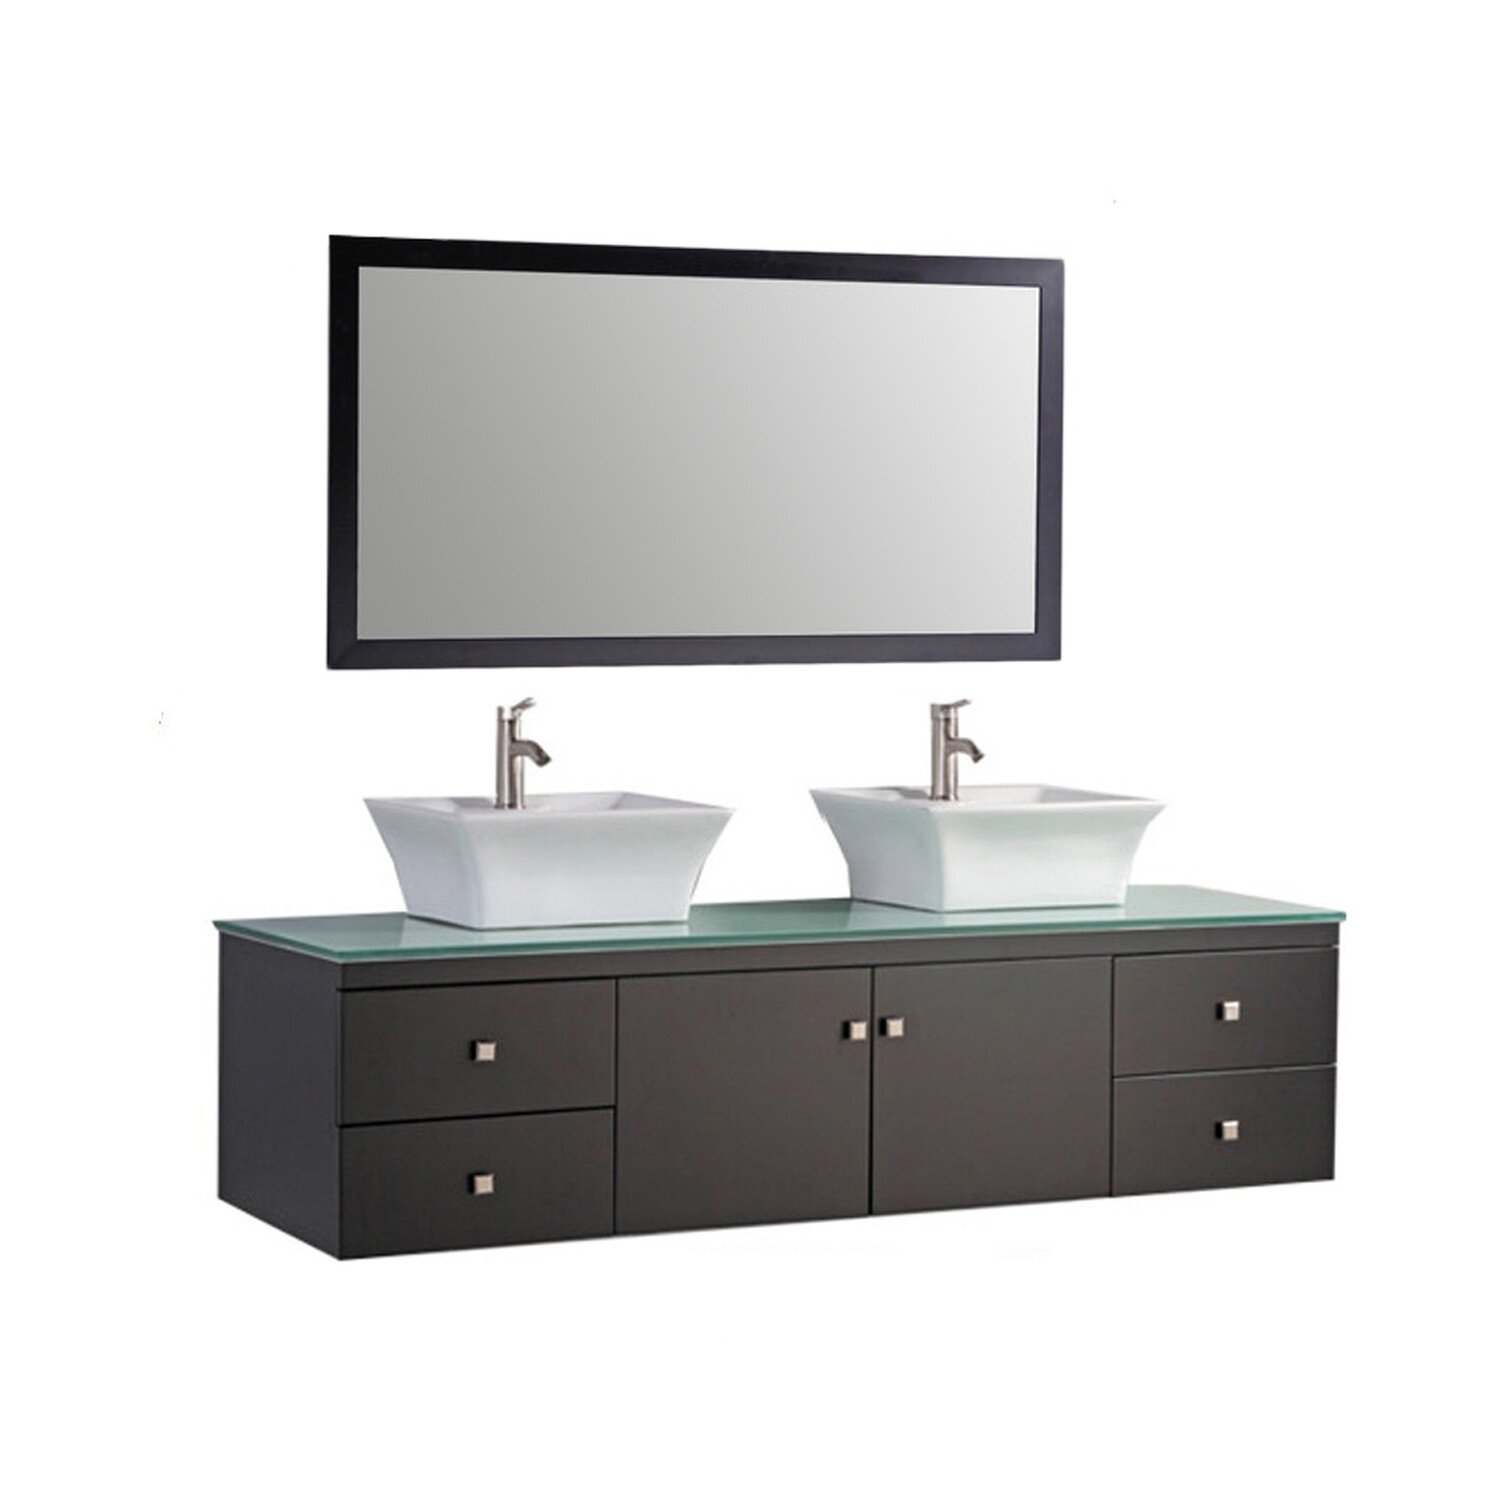 Mtdvanities nepal 72 floating double bathroom vanity set Floating bathroom vanity